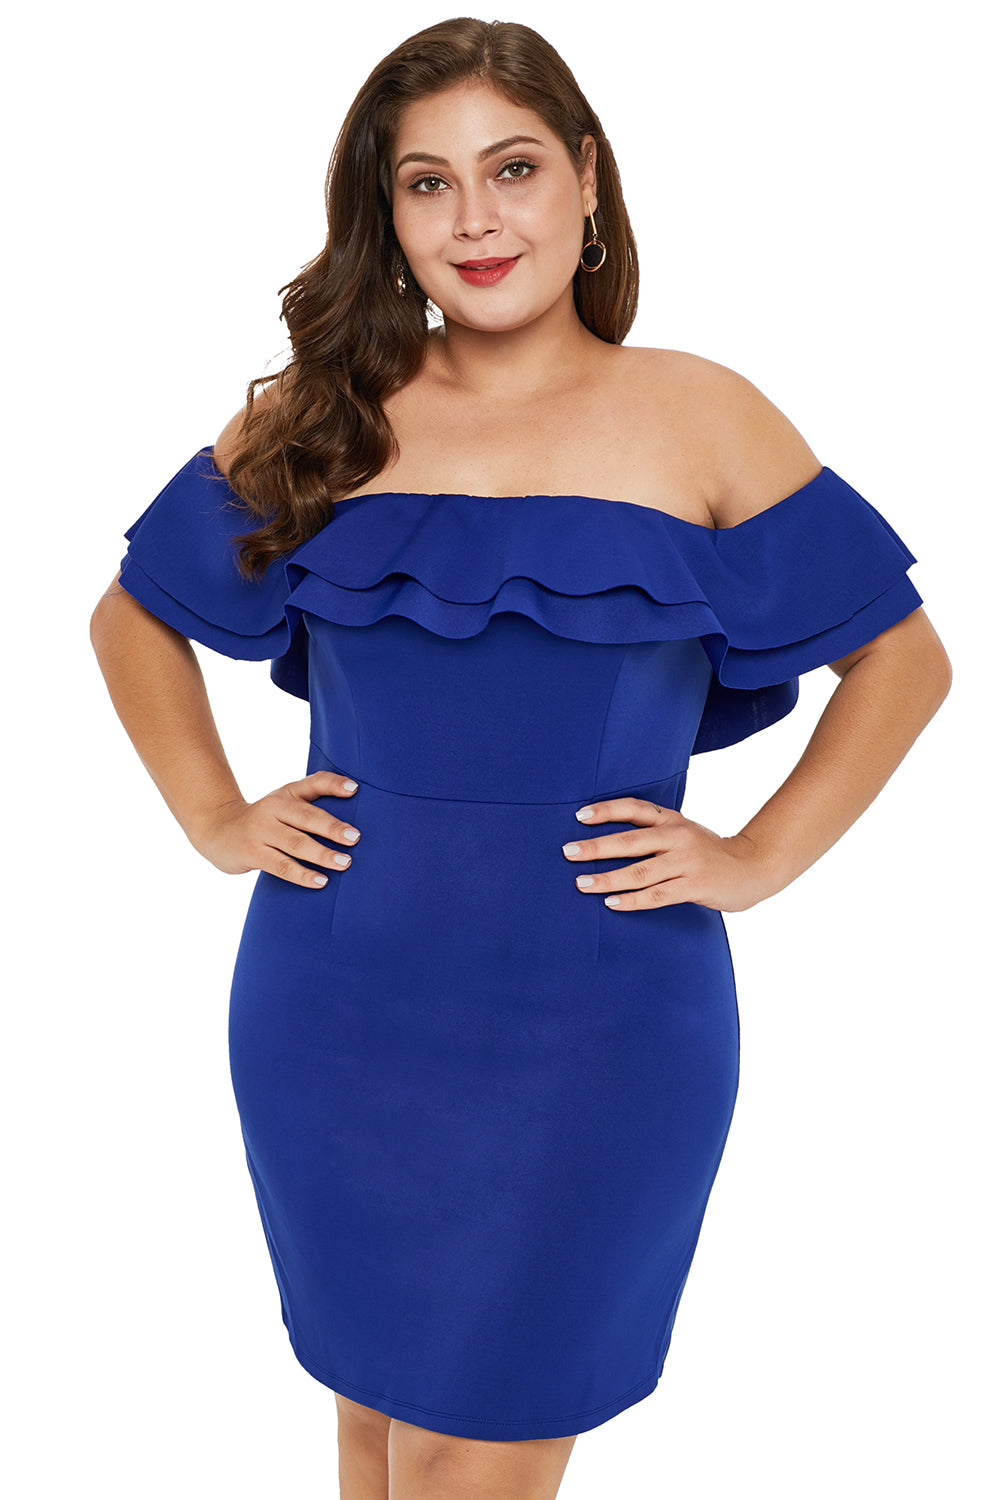 Blue Layered Ruffle Off Shoulder Plus Size Dress